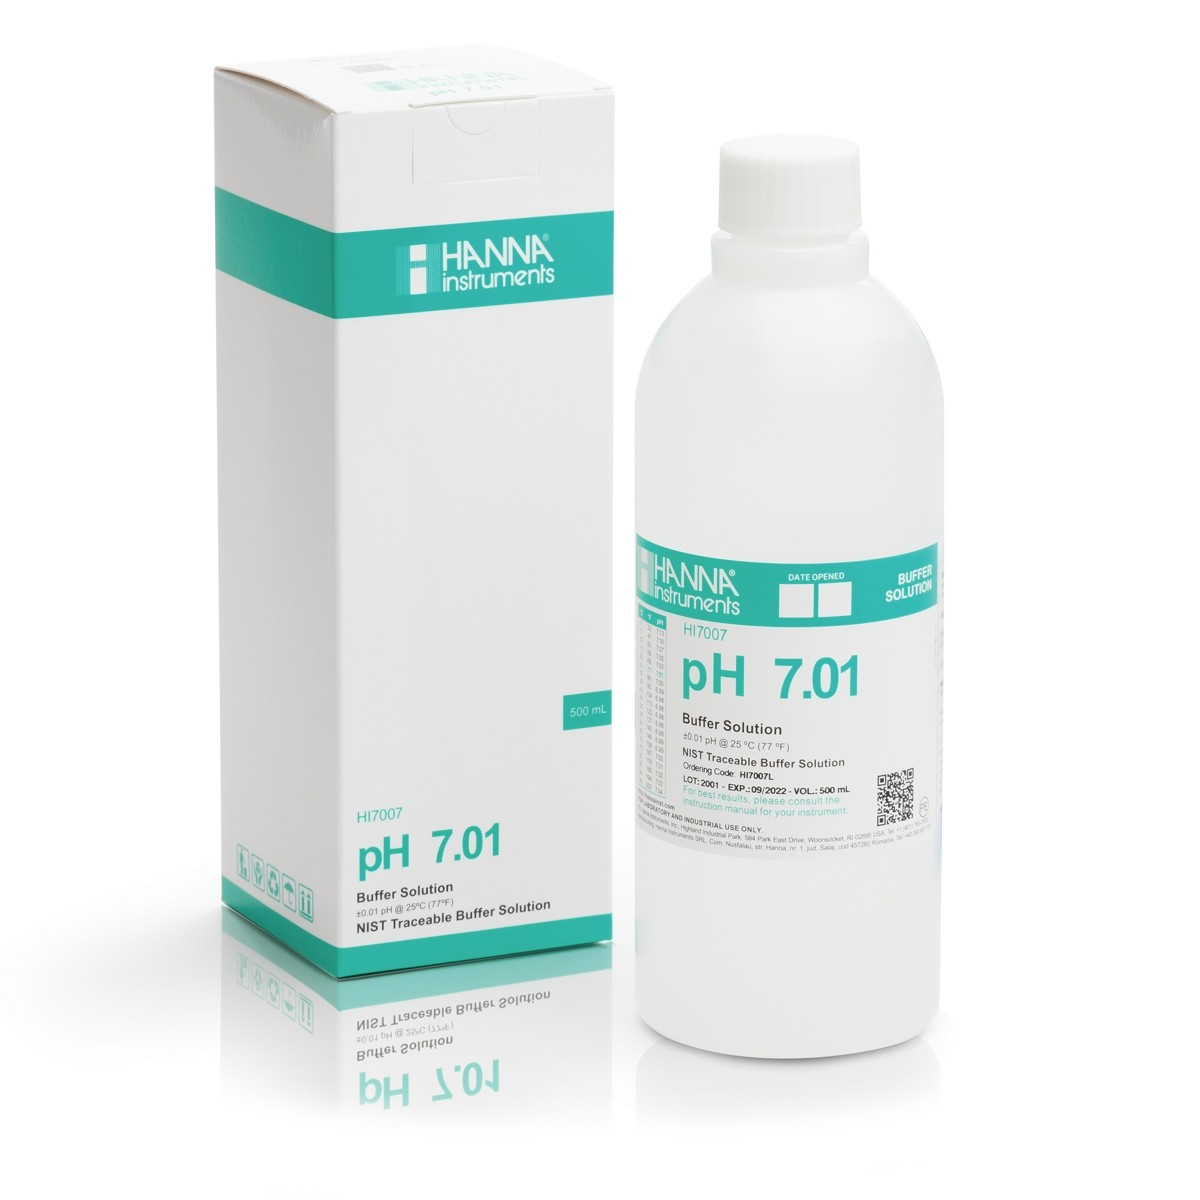 HI7007L - pH 7.01 Calibration Buffer Solution (500 mL)